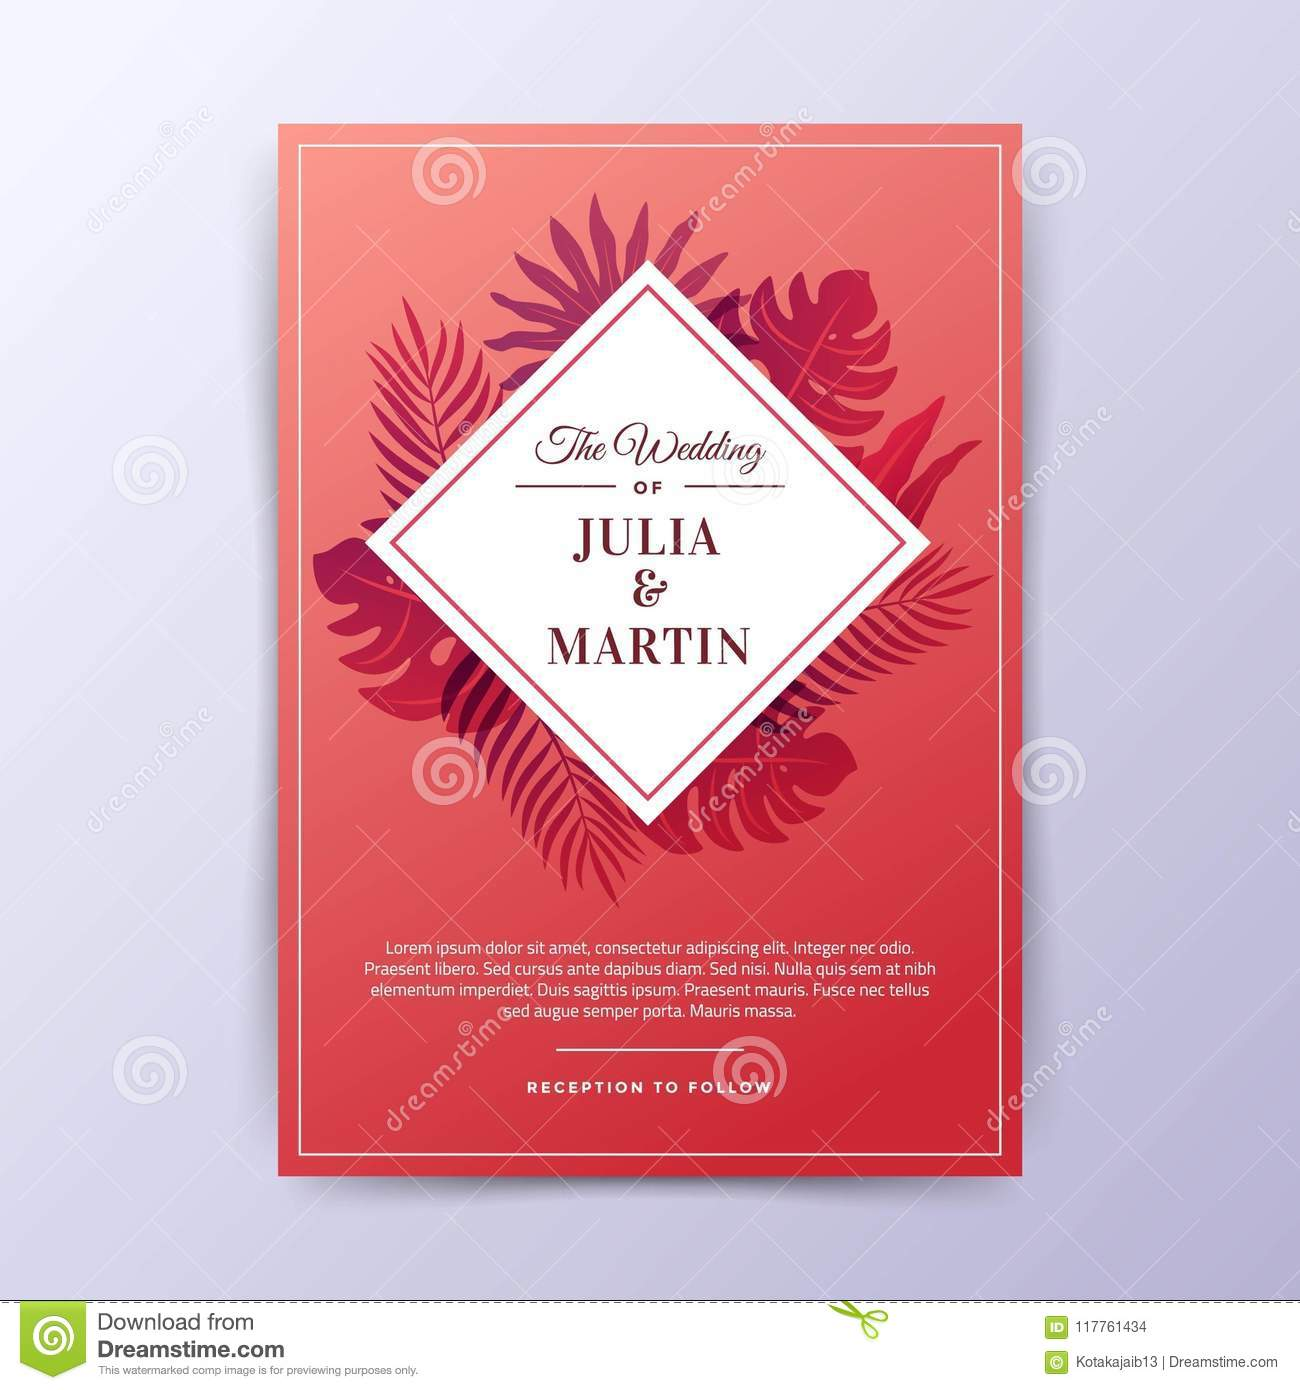 Dorable Indianapolis Wedding Invitations Festooning - Invitations ...